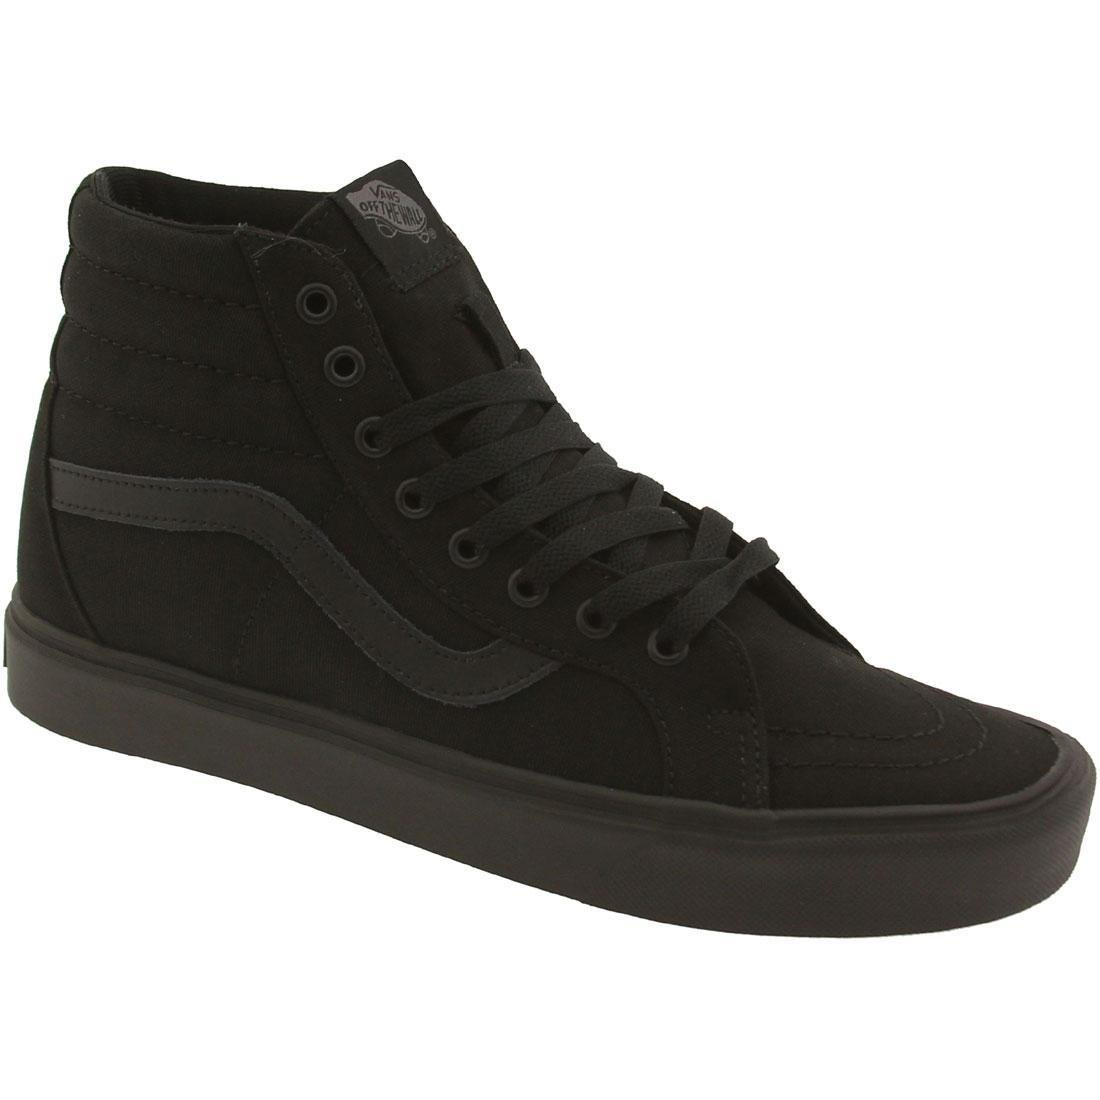 Vans Unisex-Erwachsene Sk8-Hi Lite Plus Low-Top  35 EU|Schwarz (Canvas/Black/Black)